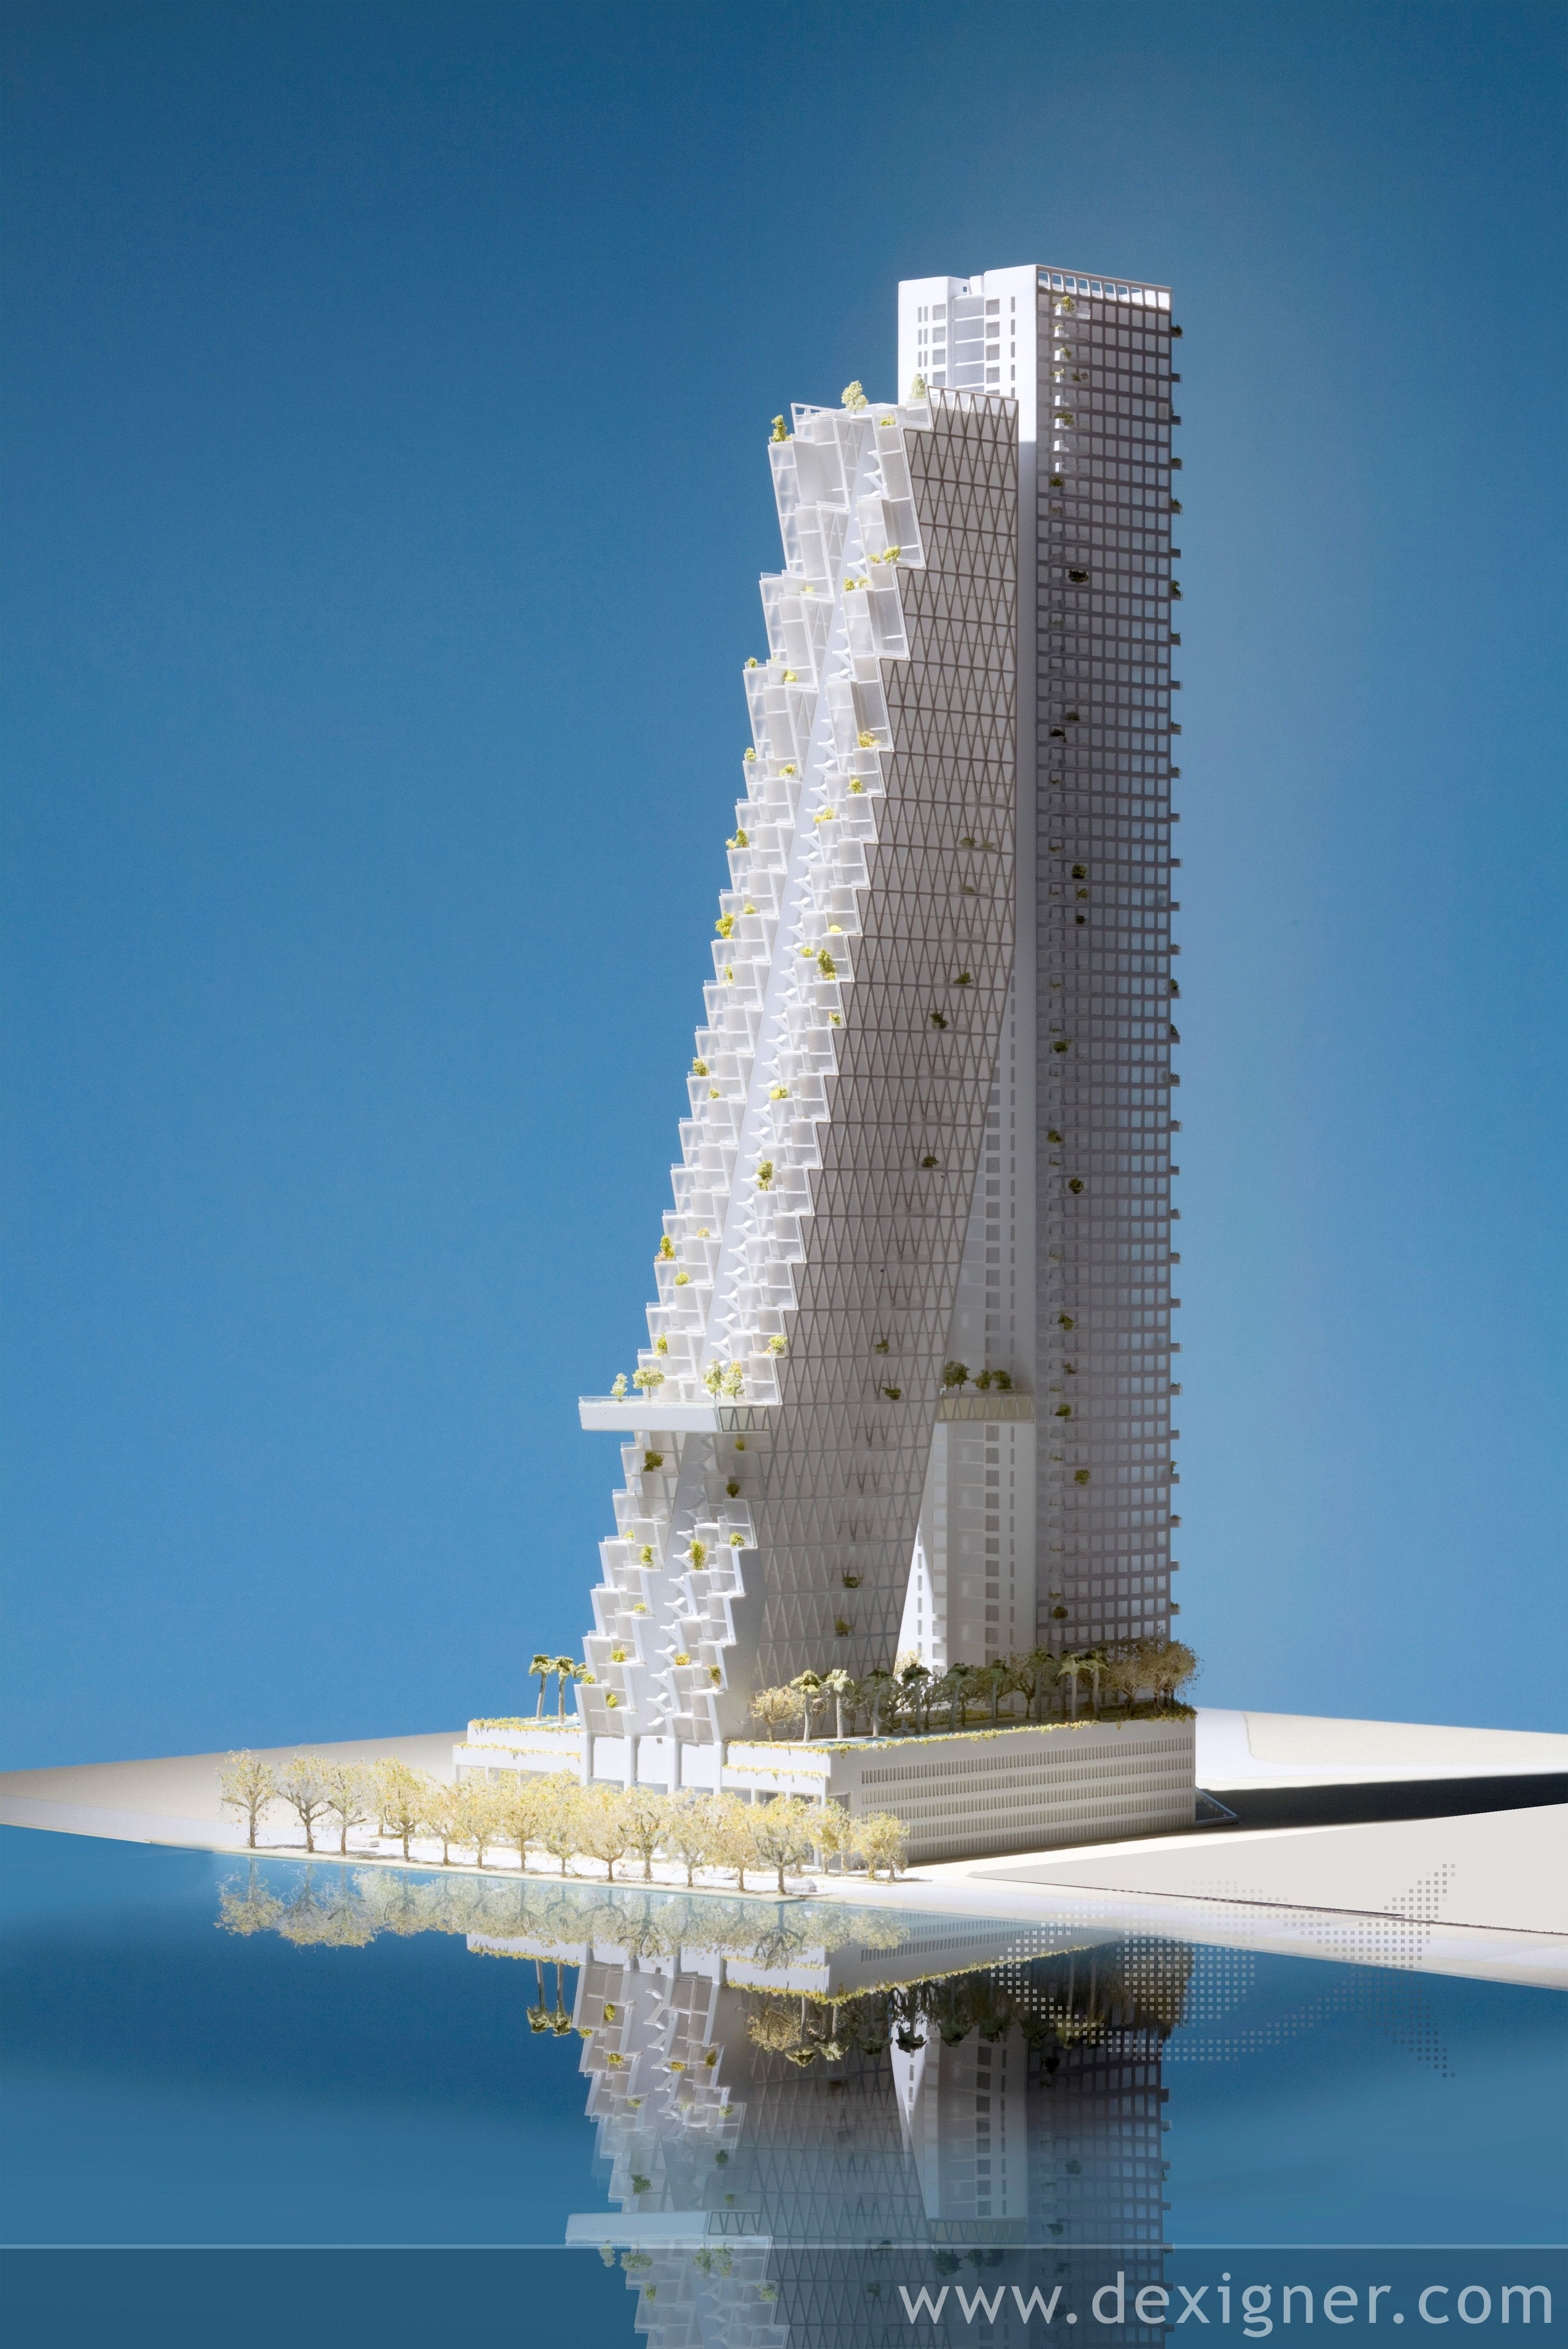 architect moshe safdie selected to design tallest residential